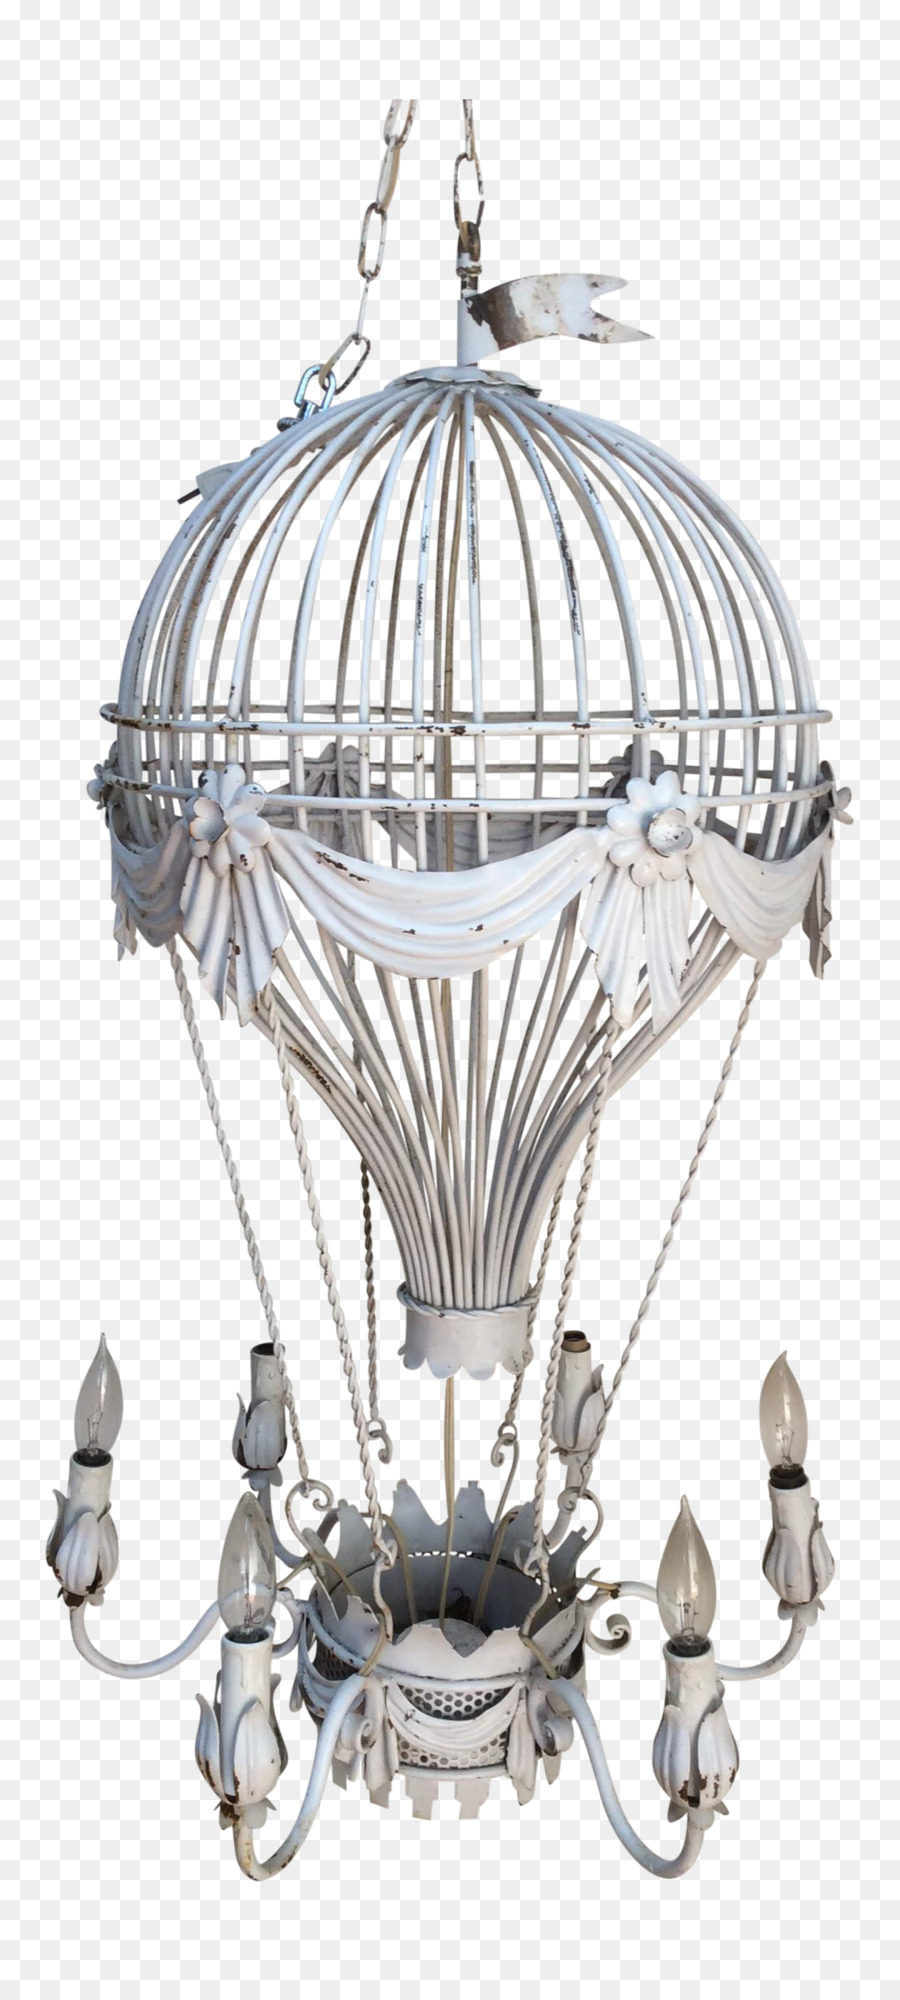 Chandelier hot air balloon electric light montgolfier brothers chandelier hot air balloon electric light montgolfier brothers balloon aloadofball Choice Image